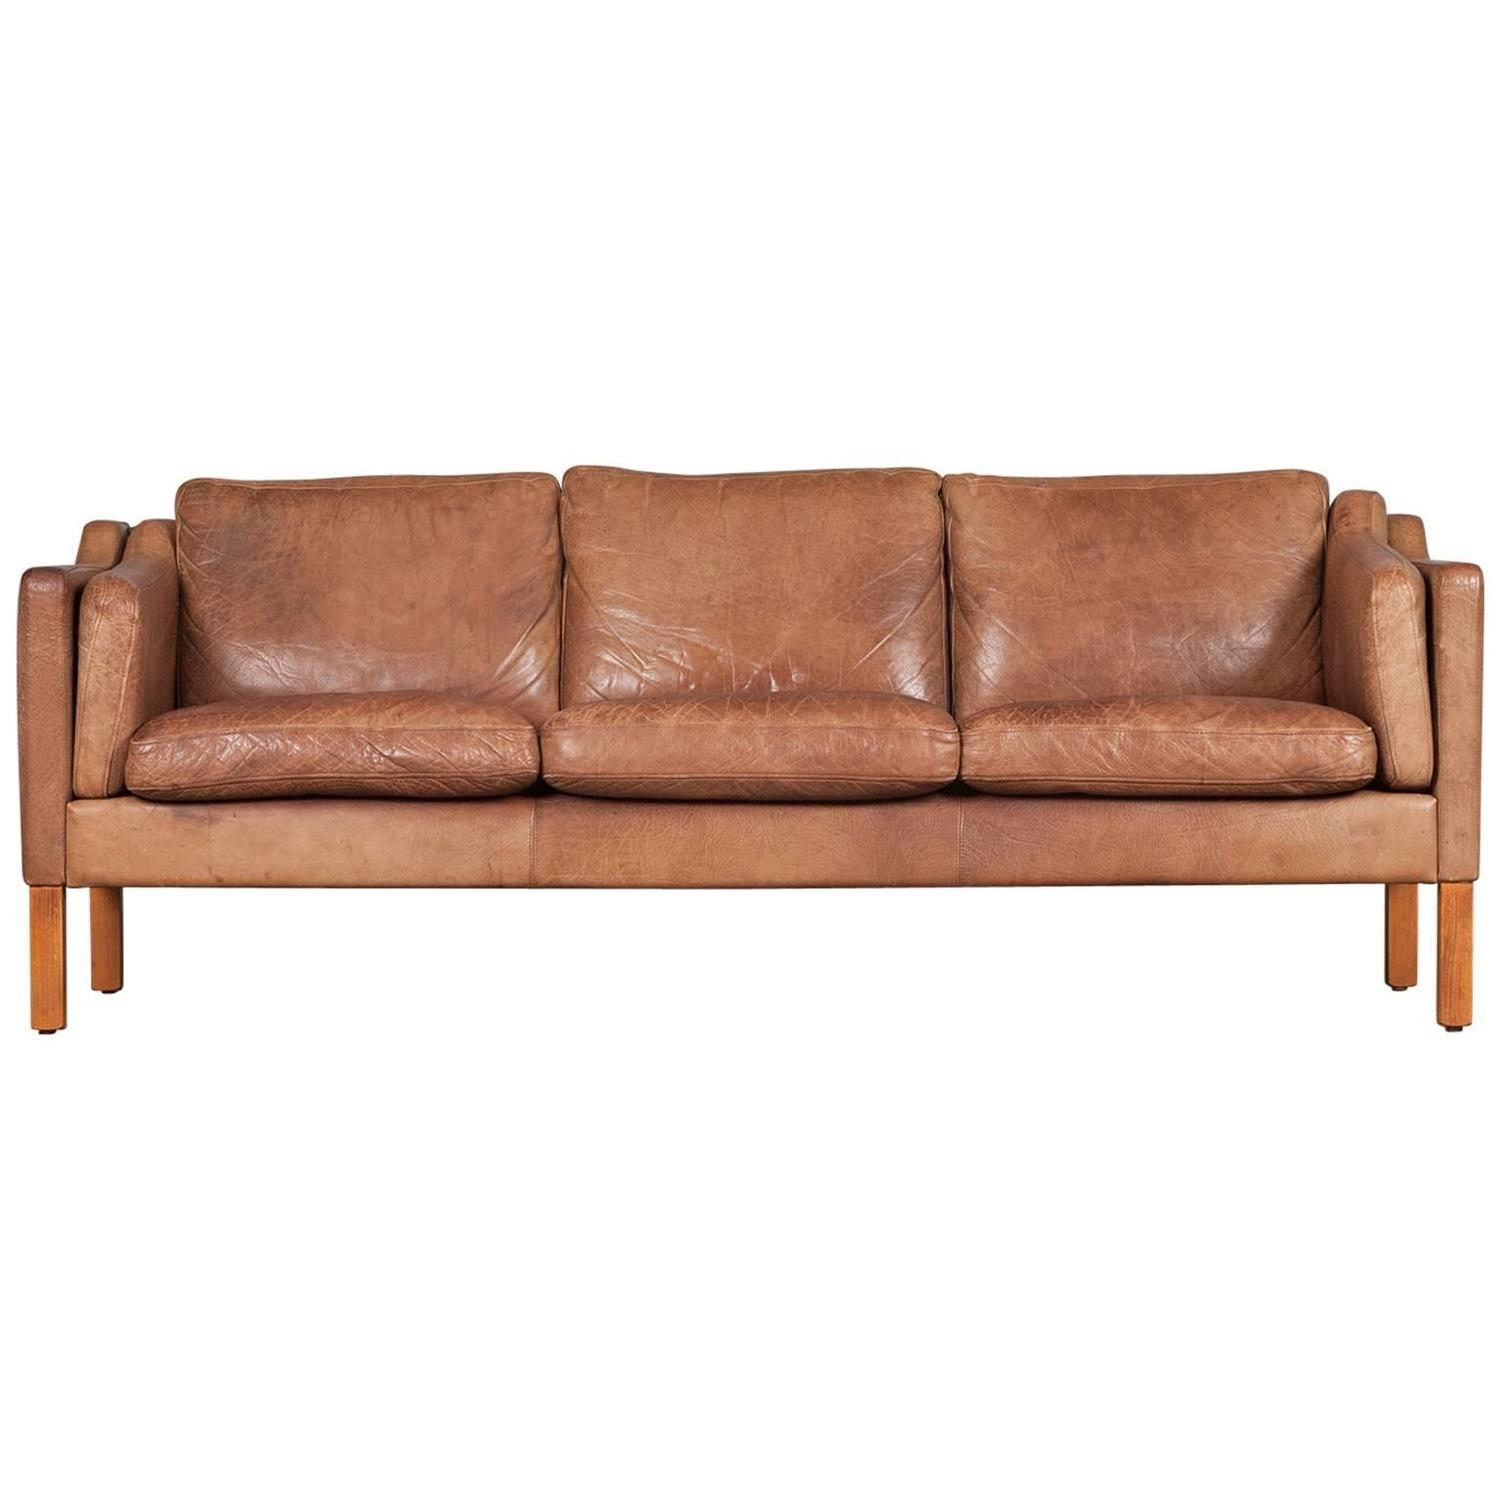 Sofas Center : Camel Color Leather Sofasramel Sofa Set Inside Camel Color Leather Sofas (View 9 of 20)